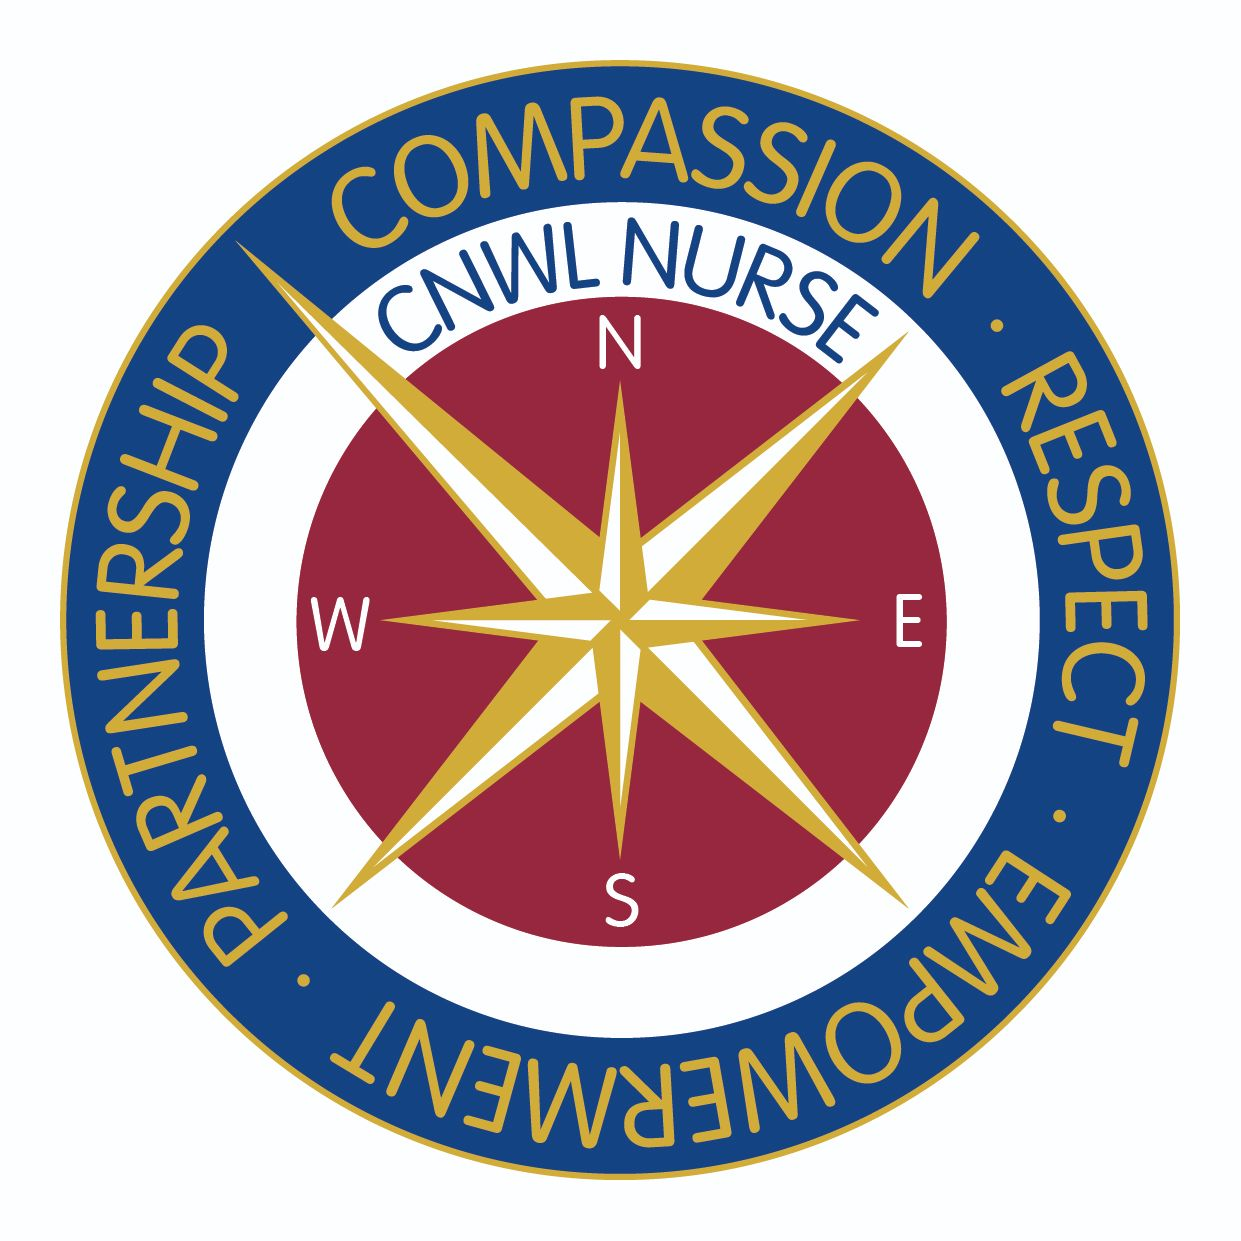 SERV_NURS_1820_NursesBadge_30mm (2).jpg